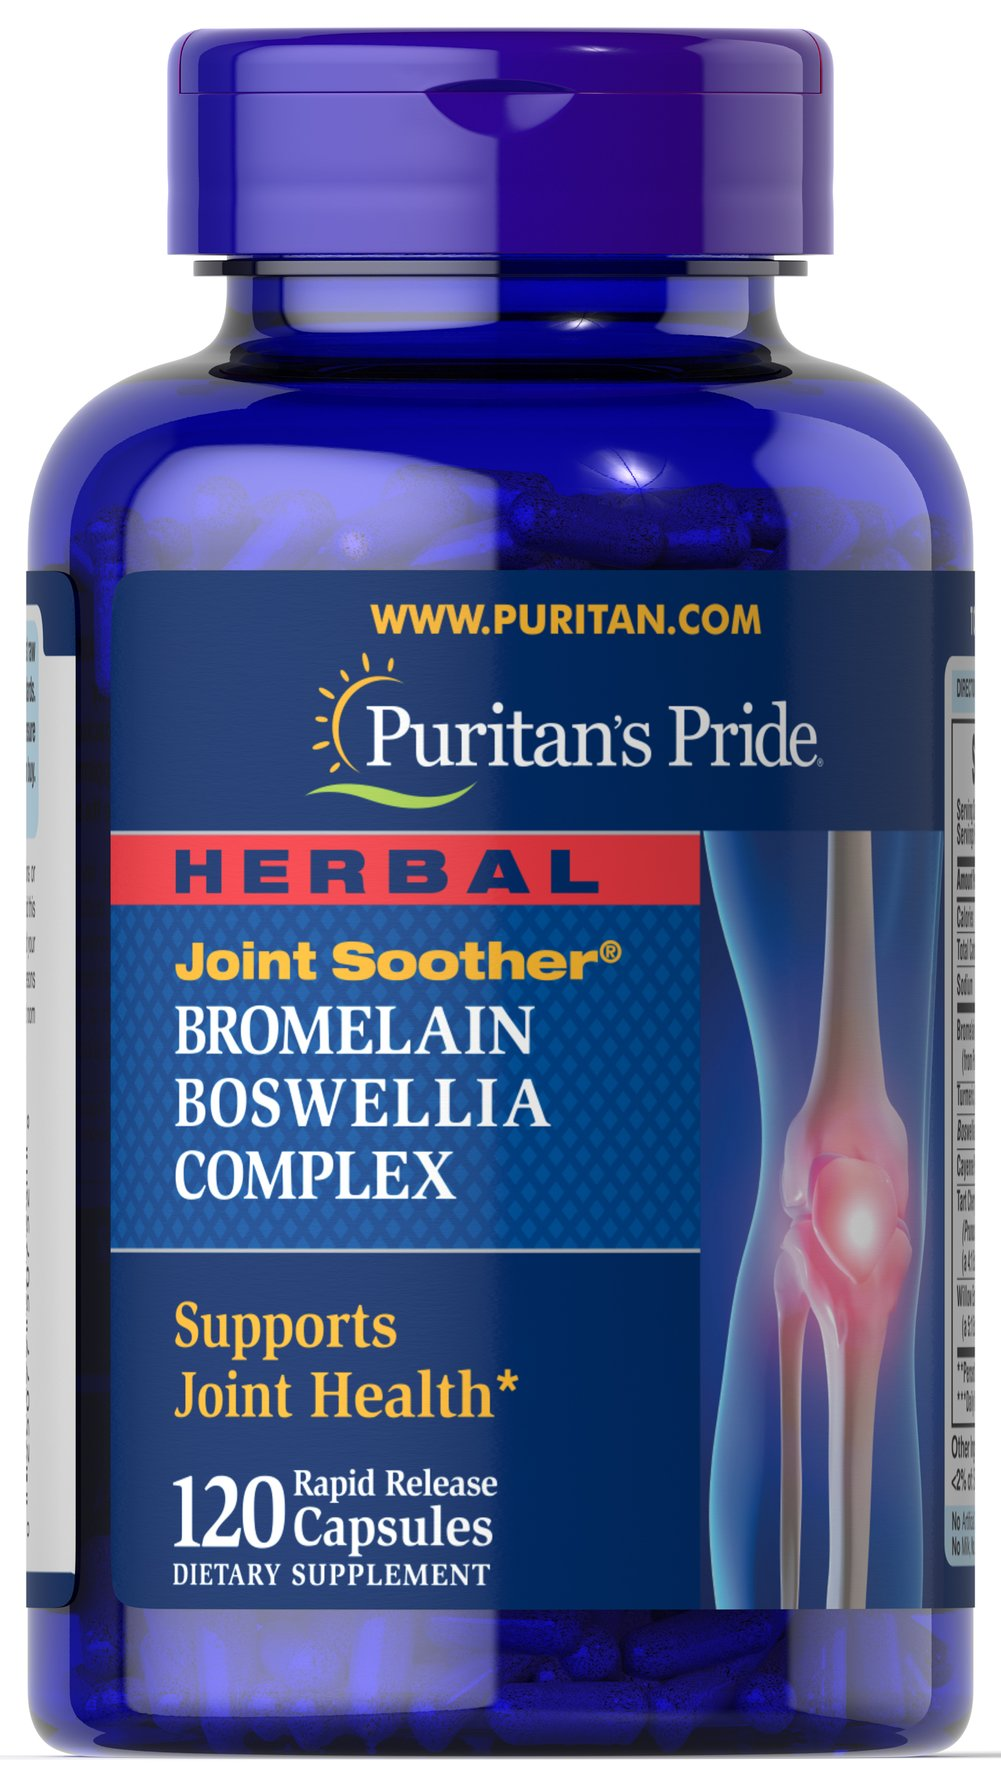 Herbal Joint Soother® Bromelain Boswellia Complex with Turmeric <p>Contains ingredients that work together to support joint health**</p><p>Also contains Turmeric and White Willow Extract</p><p>Herbal Joint Soother® available in rapid release capsules</p><p>This Herbal Joint Soother® features a combination of ingredients that work together to support joint health.** Cartilage support is an important part of healthy joints, and these rapid r